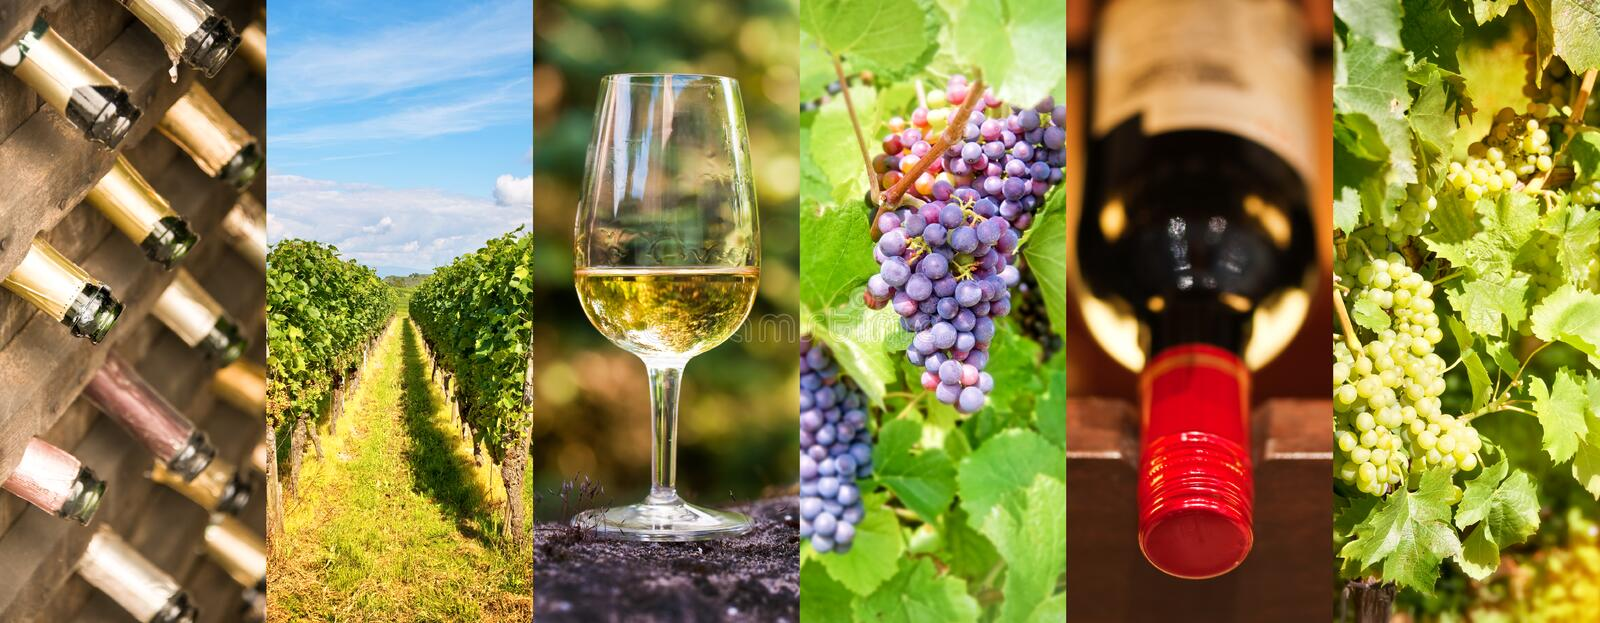 Oenology and wine panoramic photo collage, wine concept royalty free stock photos